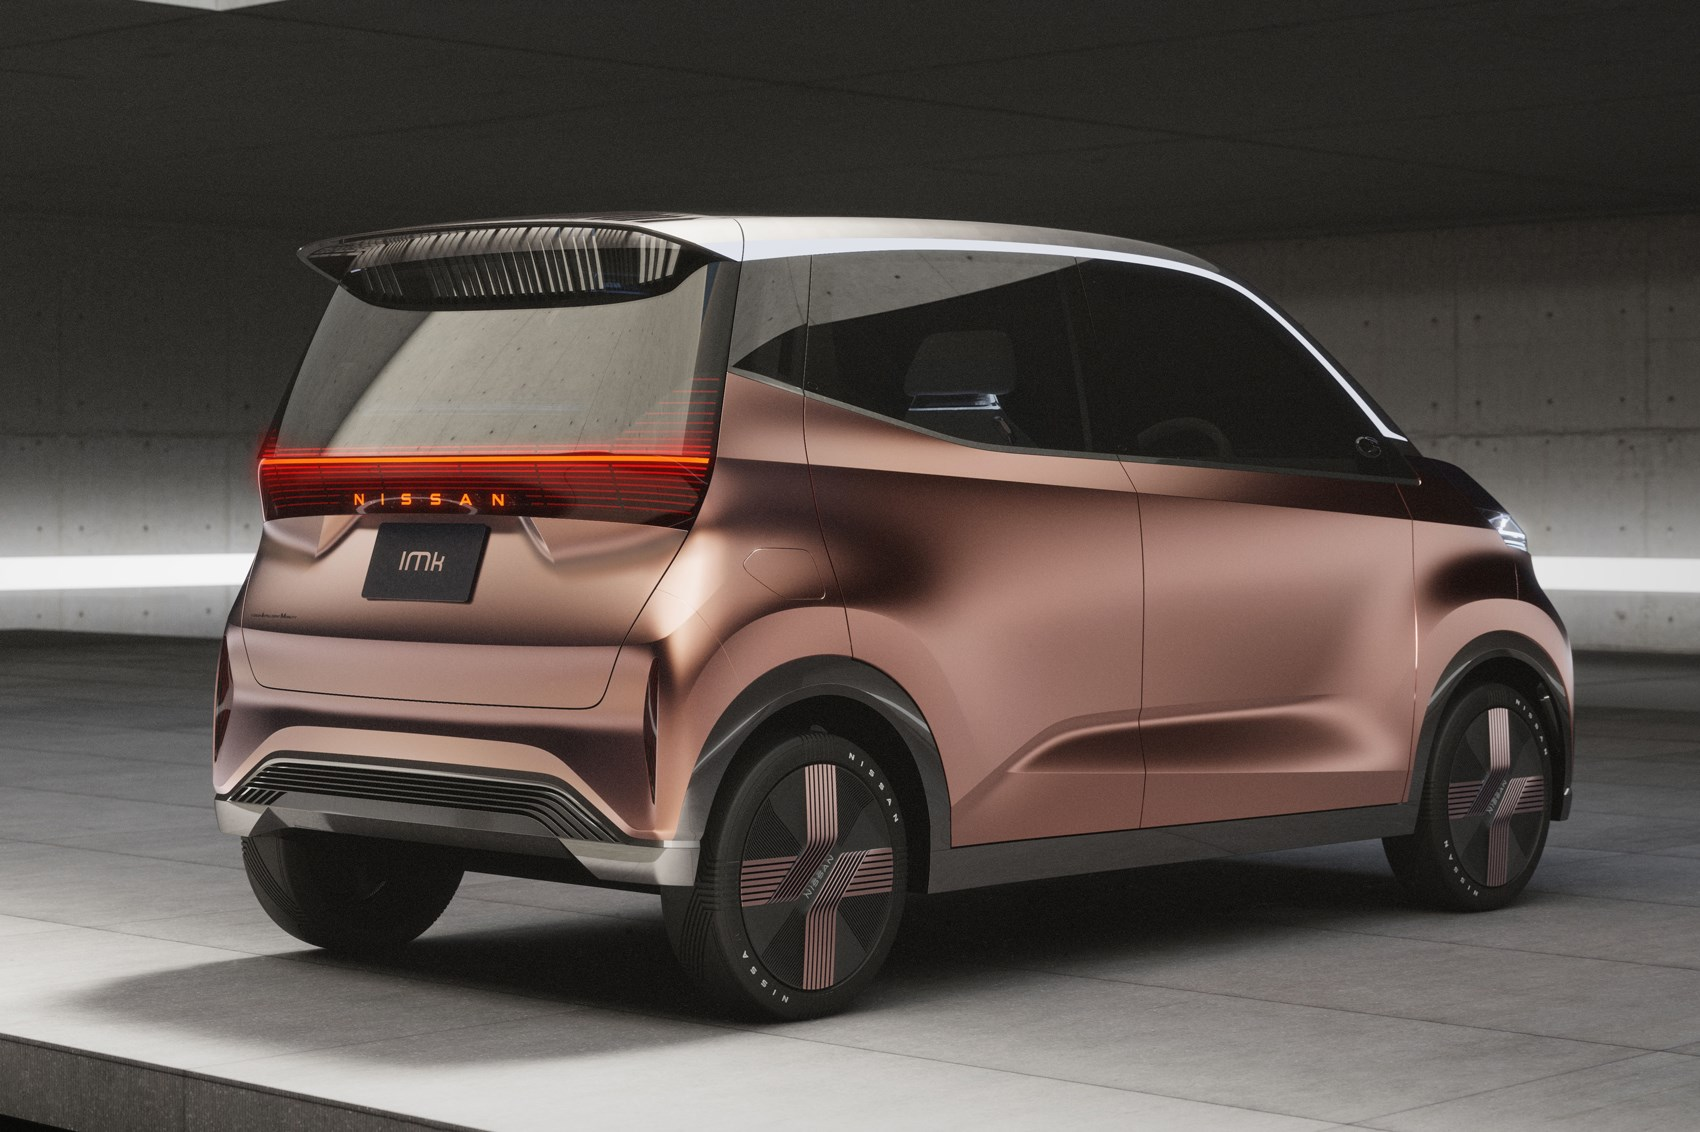 Nissan IMk concept unveiled